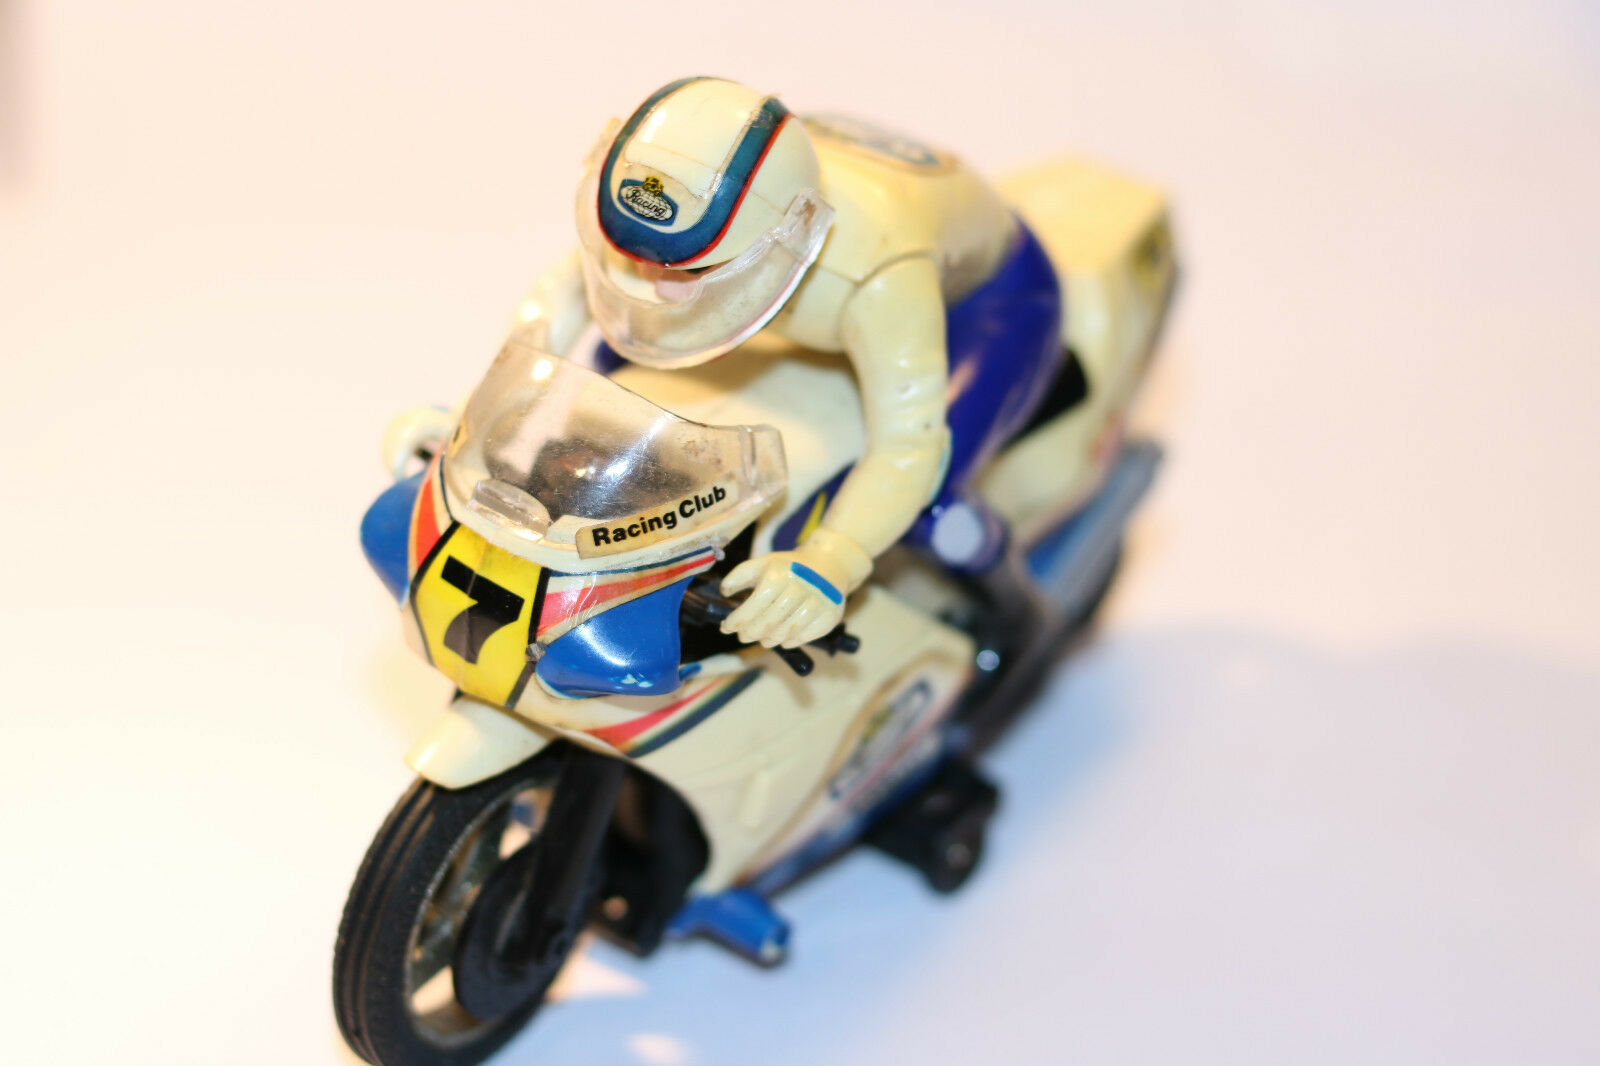 RARE VINTAGE BATTERY OPERATED MOTORCYCLE MOTORBIKE TOY (RC RACING CLUB)